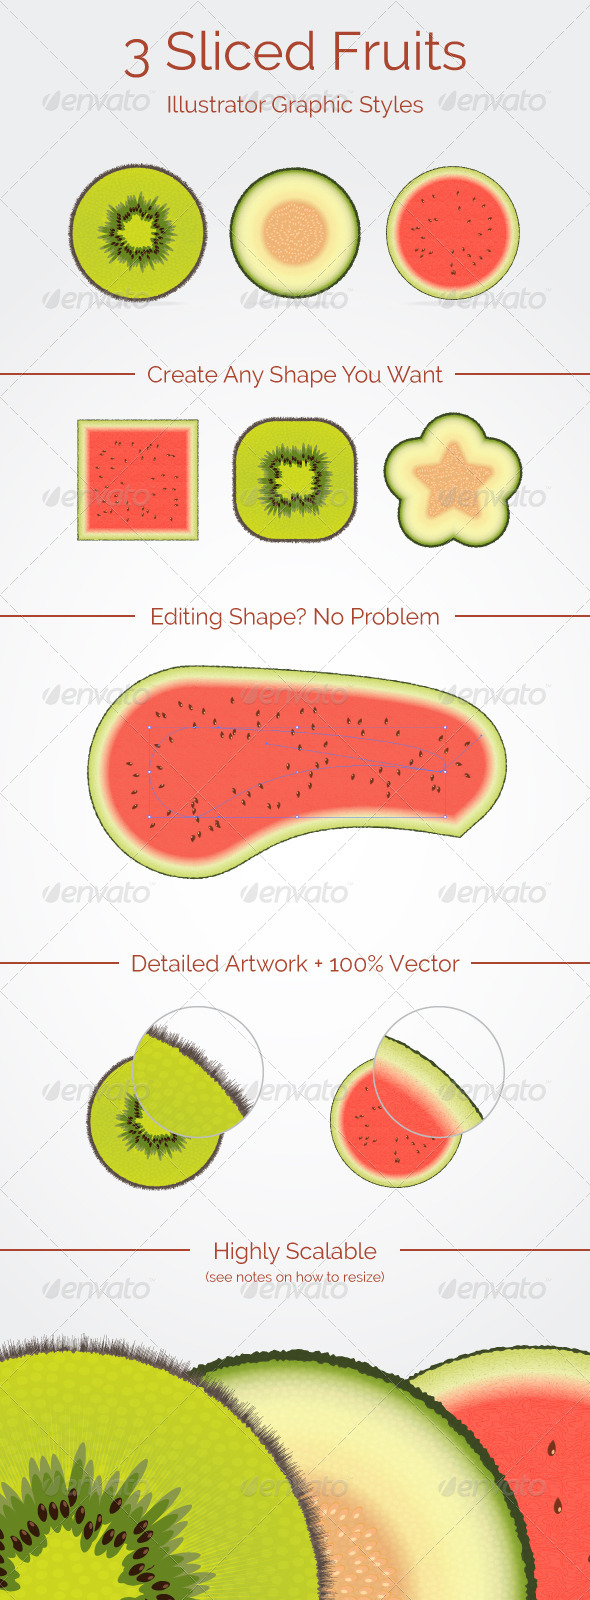 GraphicRiver 3 Sliced Fruits Graphic Styles 6054890